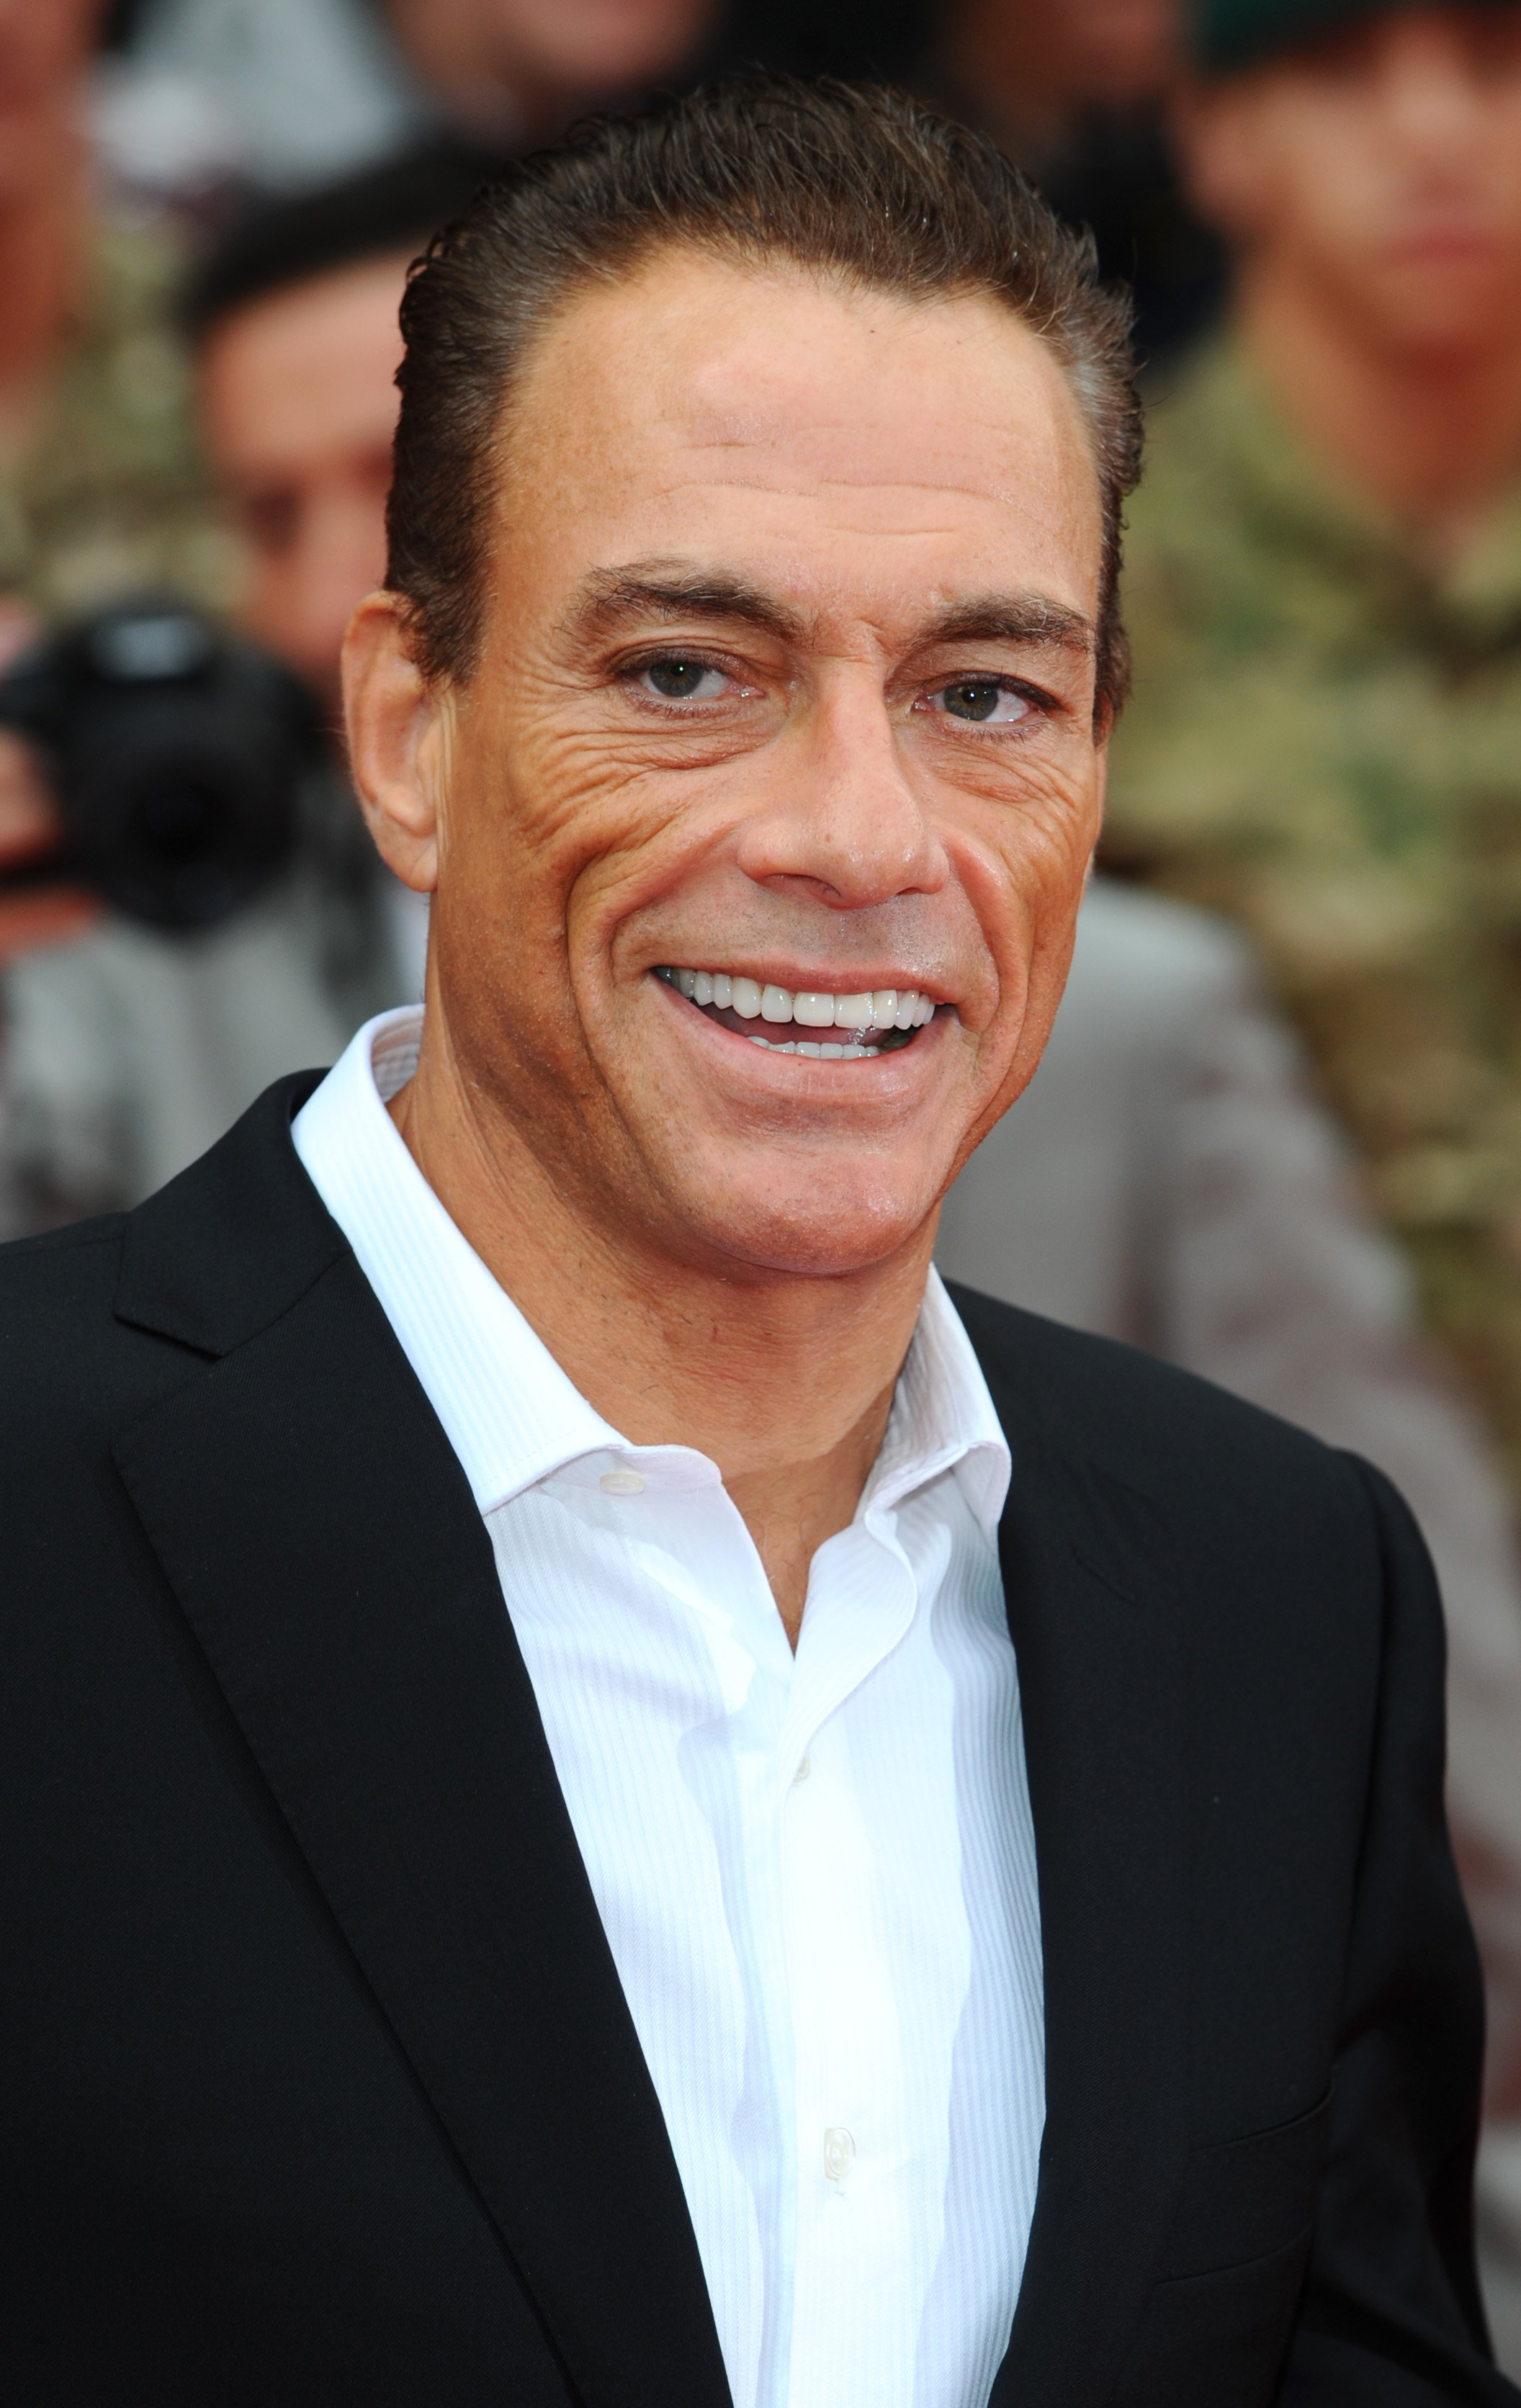 Jean-Claude Van Damme à la première de The Expendables 2 le 13 août 2012 | Photo : Getty Images.